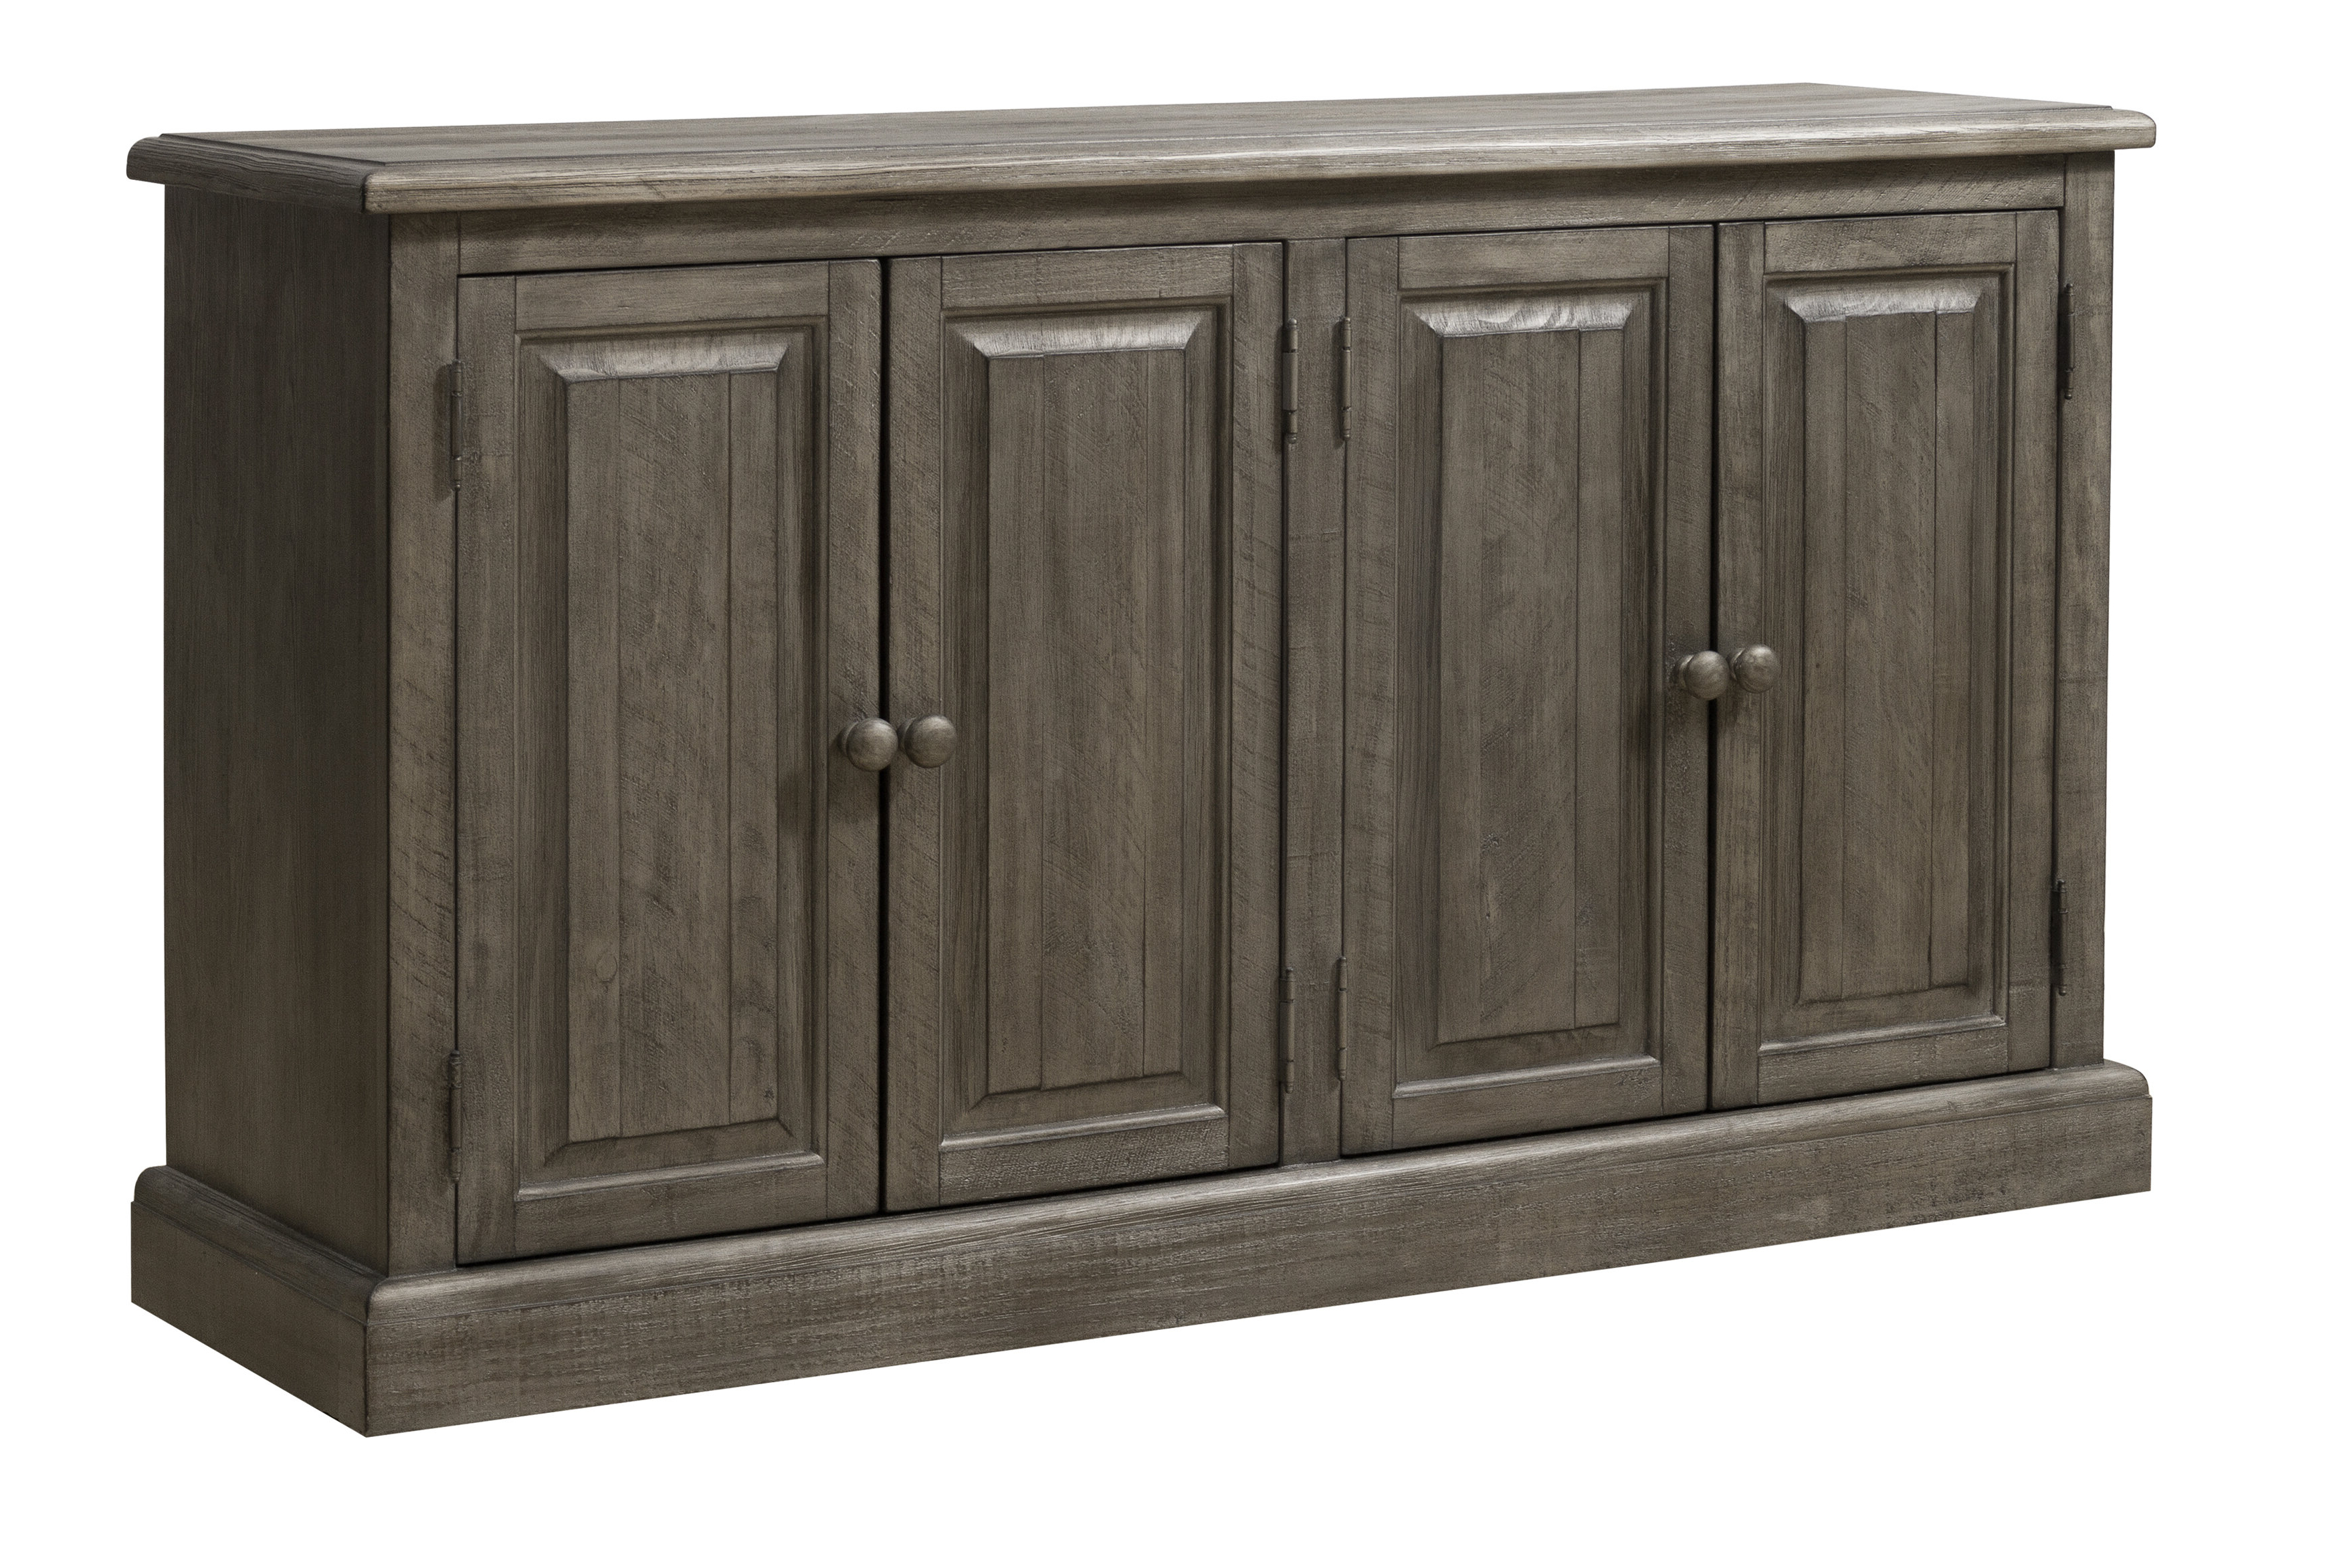 Canalou Classic 4 Door Sideboard Intended For Stennis Sideboards (View 6 of 20)